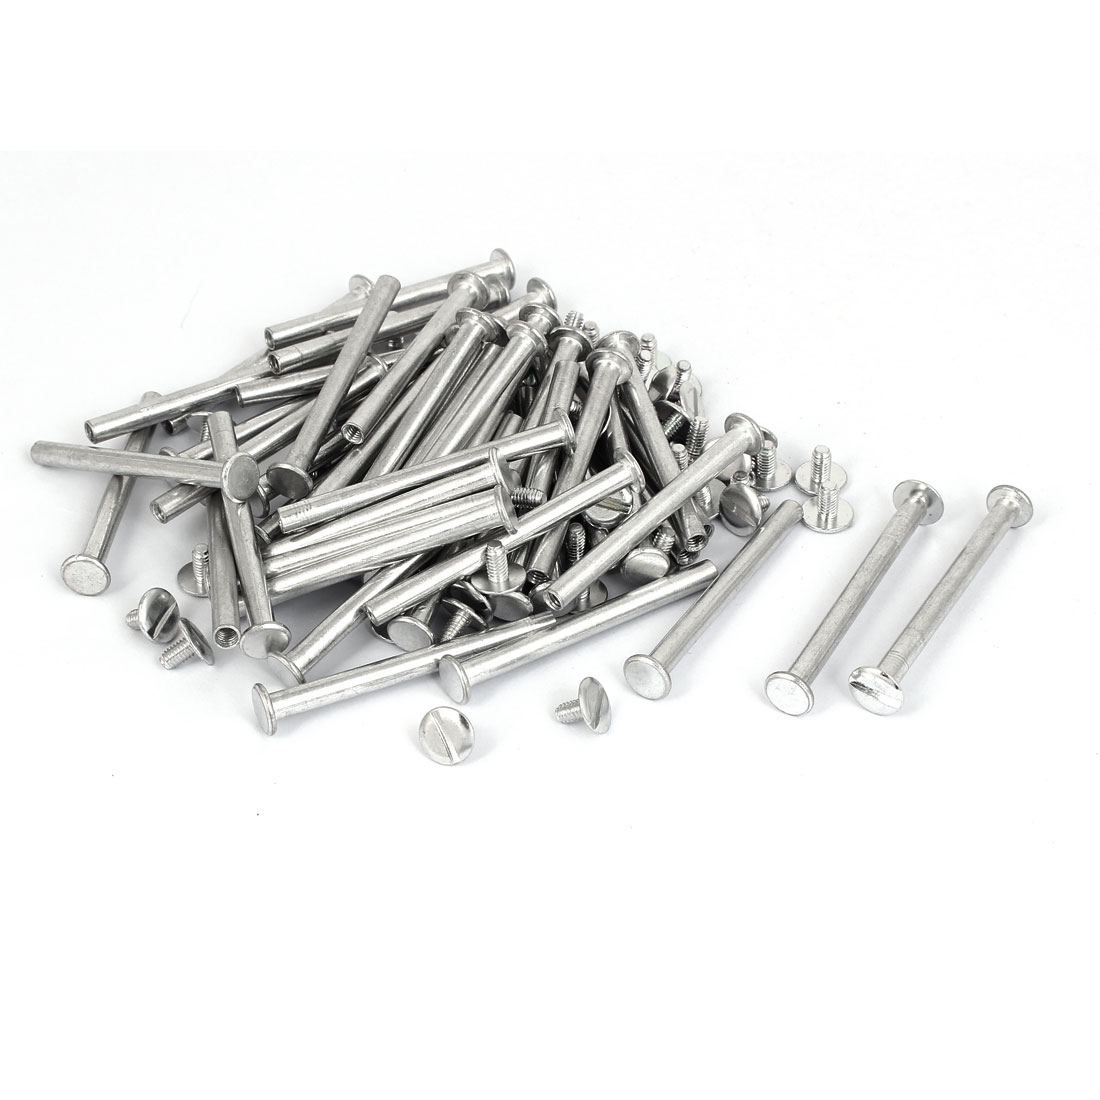 M5x55mm Aluminum Binding Screw Post 50pcs for Photo Albums Scrapbook